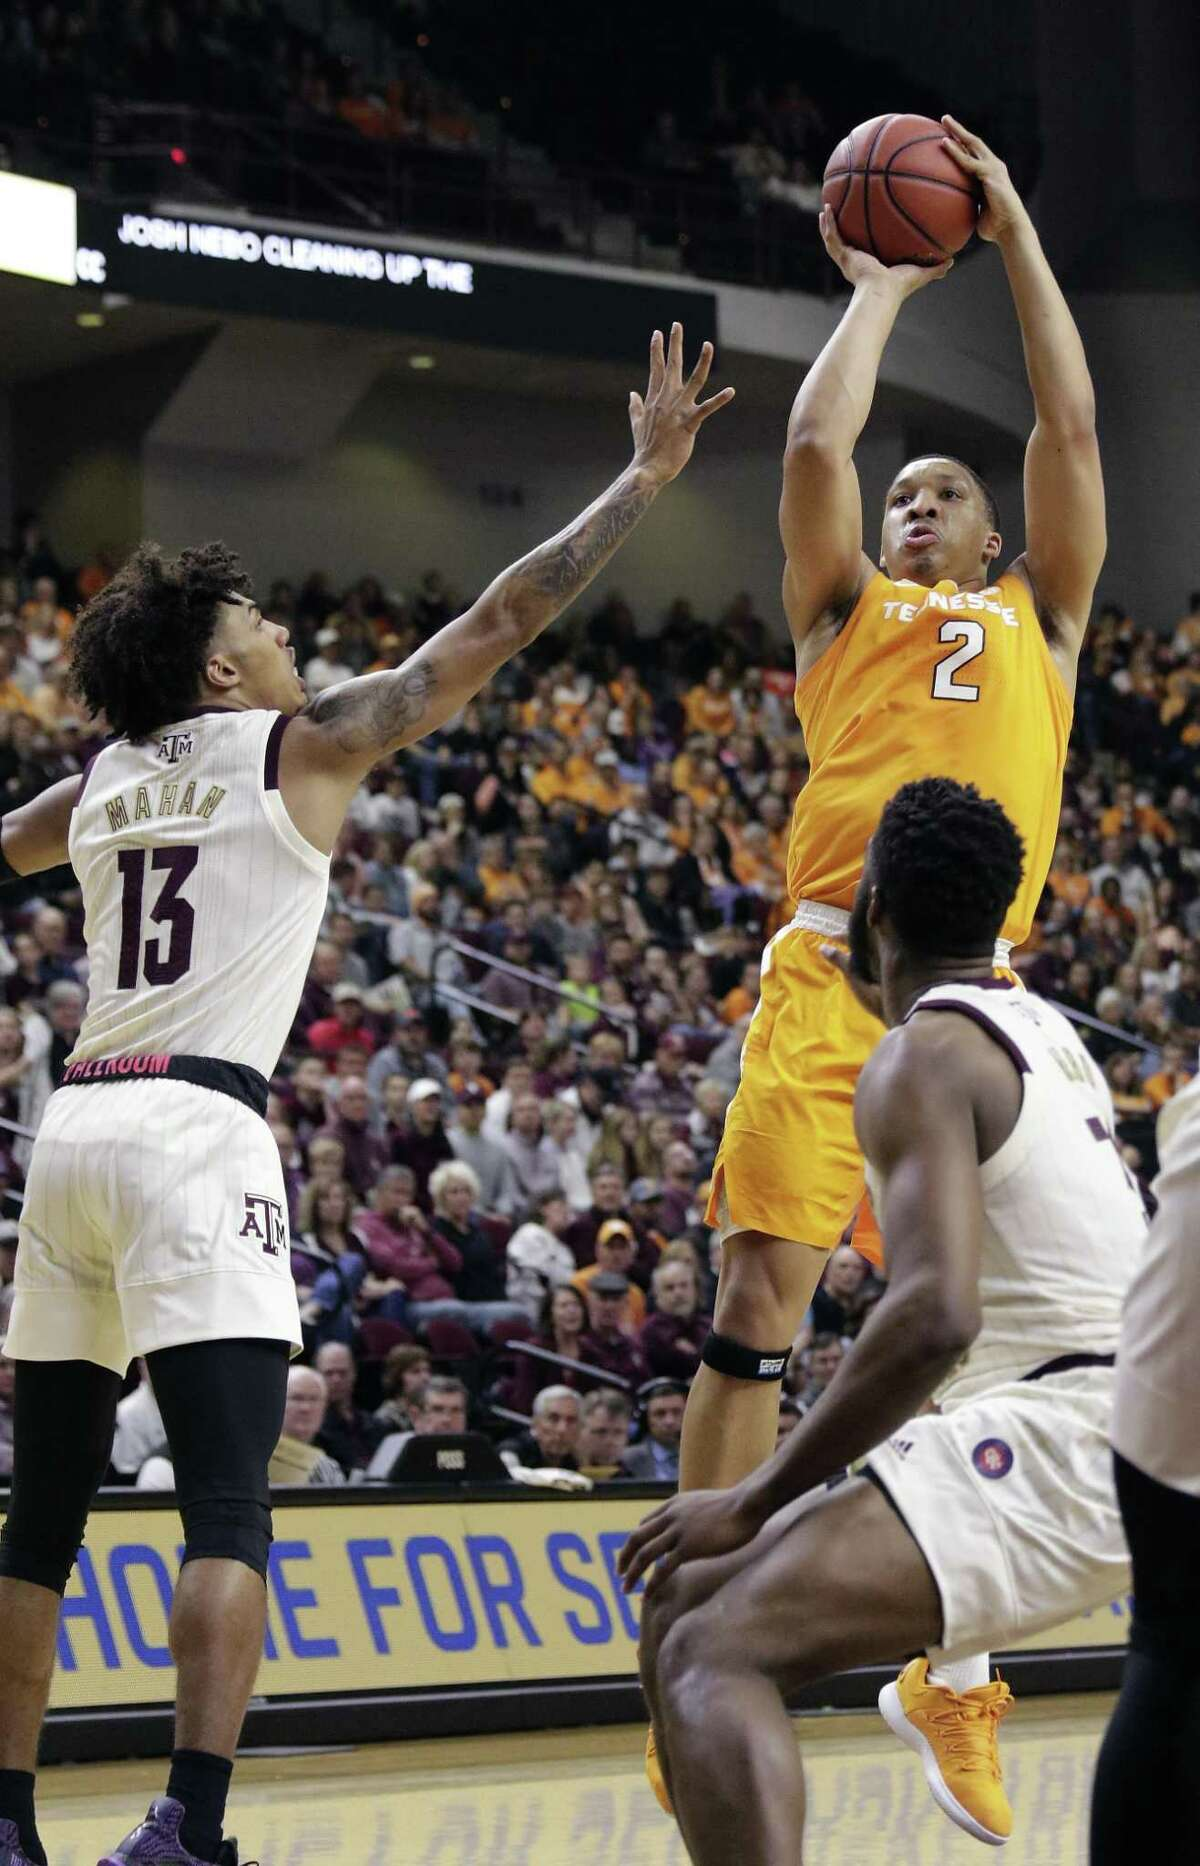 Tennessee forward Grant Williams (2) did a little bit of everything for the Volunteers, leading the team with 22 points, adding 10 rebounds and 4 assists.